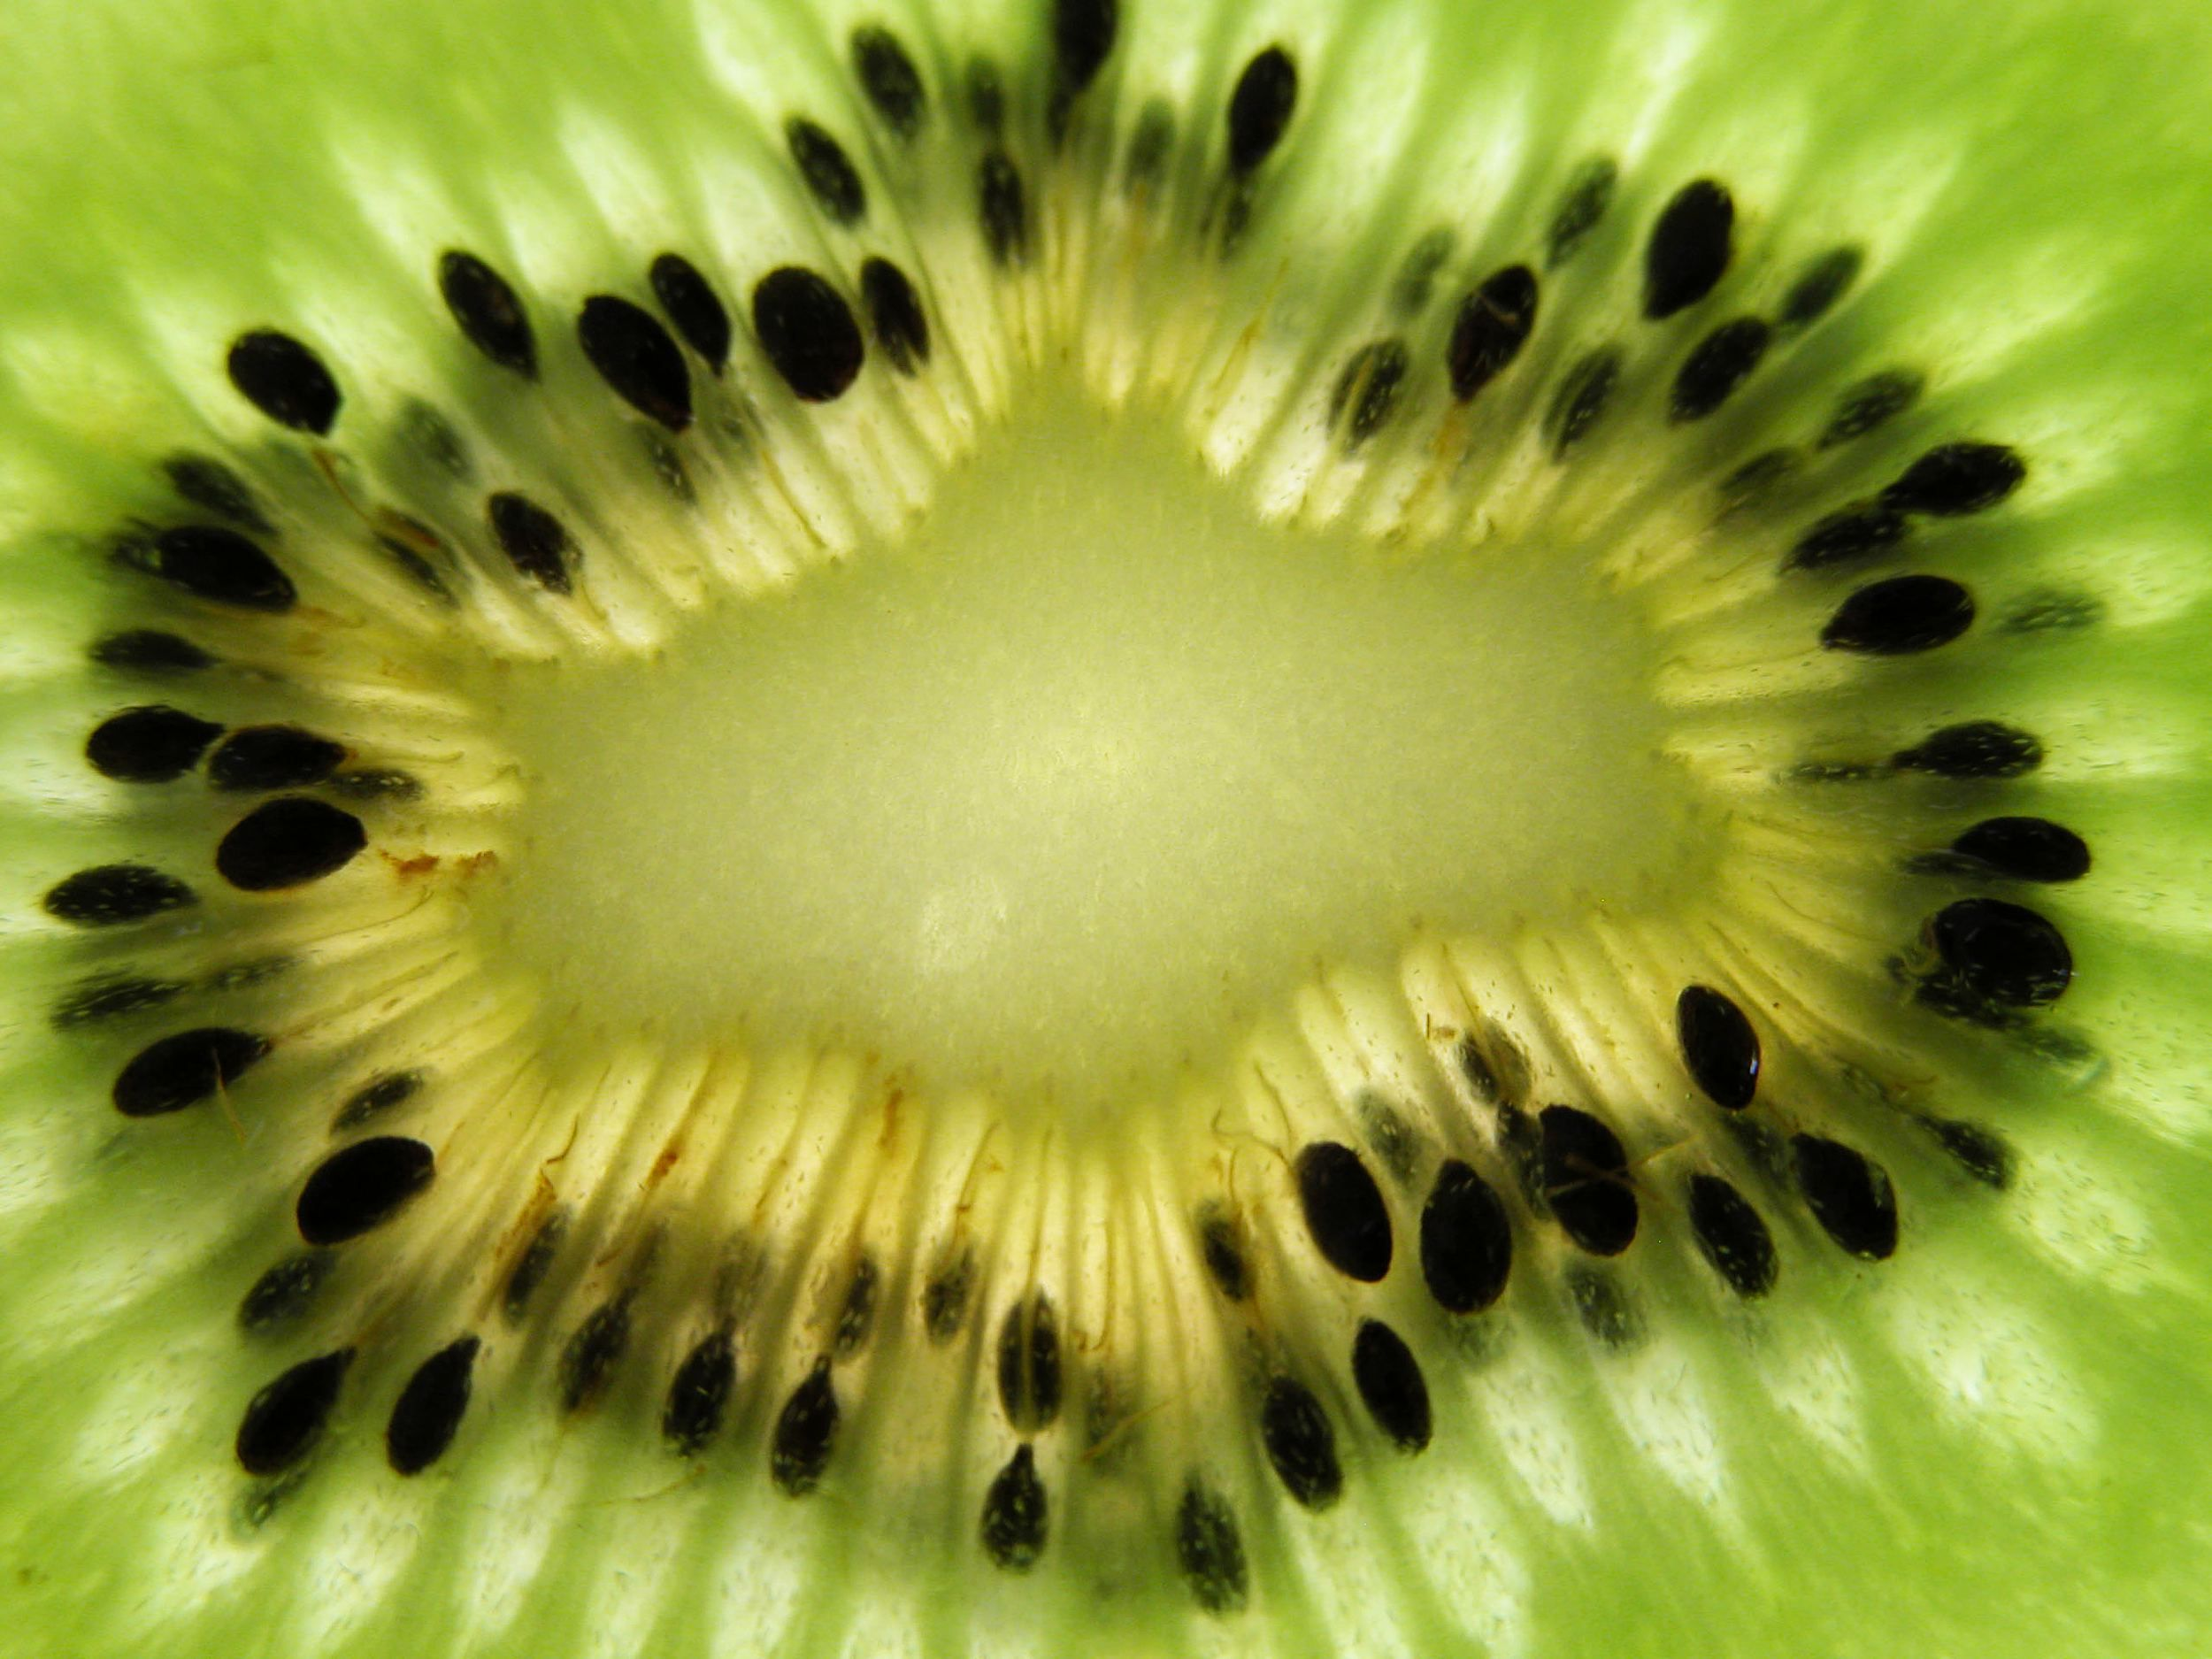 Inside Kiwi Fruit Wallpaper And Photo Download By Photosof Org Beautiful Macro Photography Macro Photography Kiwi Wallpaper macro pear fruit branch leaves